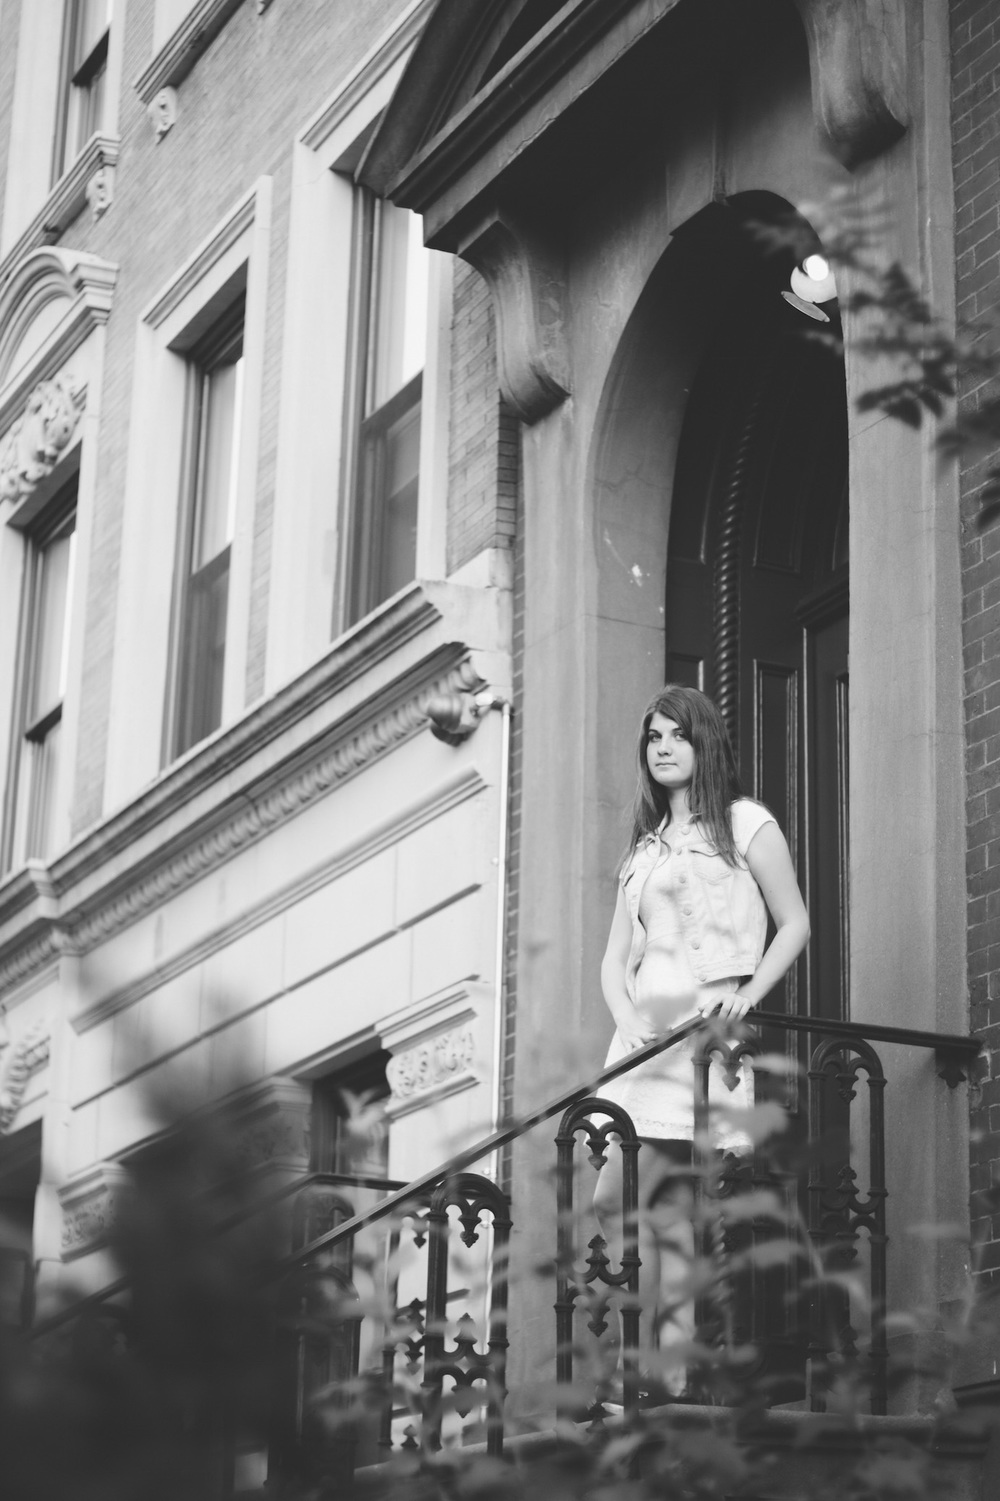 katya senior photography brownstone chelsea denim white dress irra korrelat walksmilesnap new york.jpg